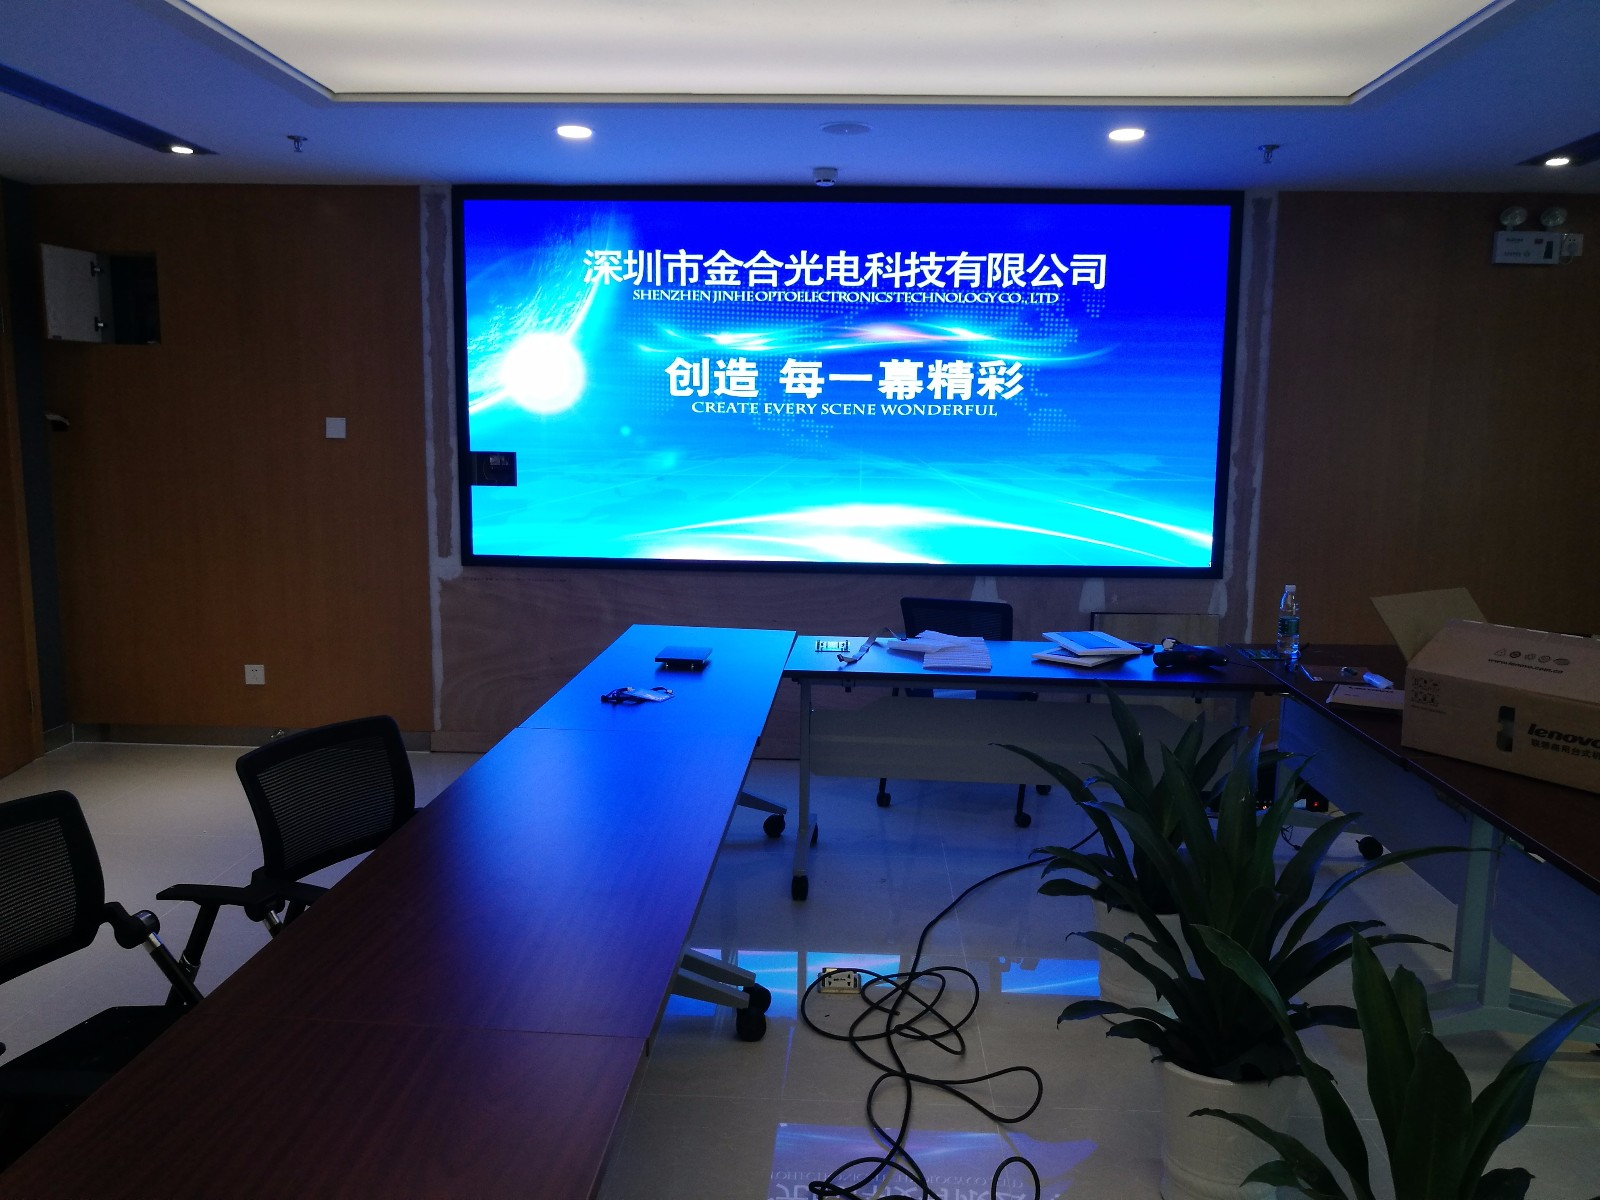 The main differences between LED displays and LCD displays,